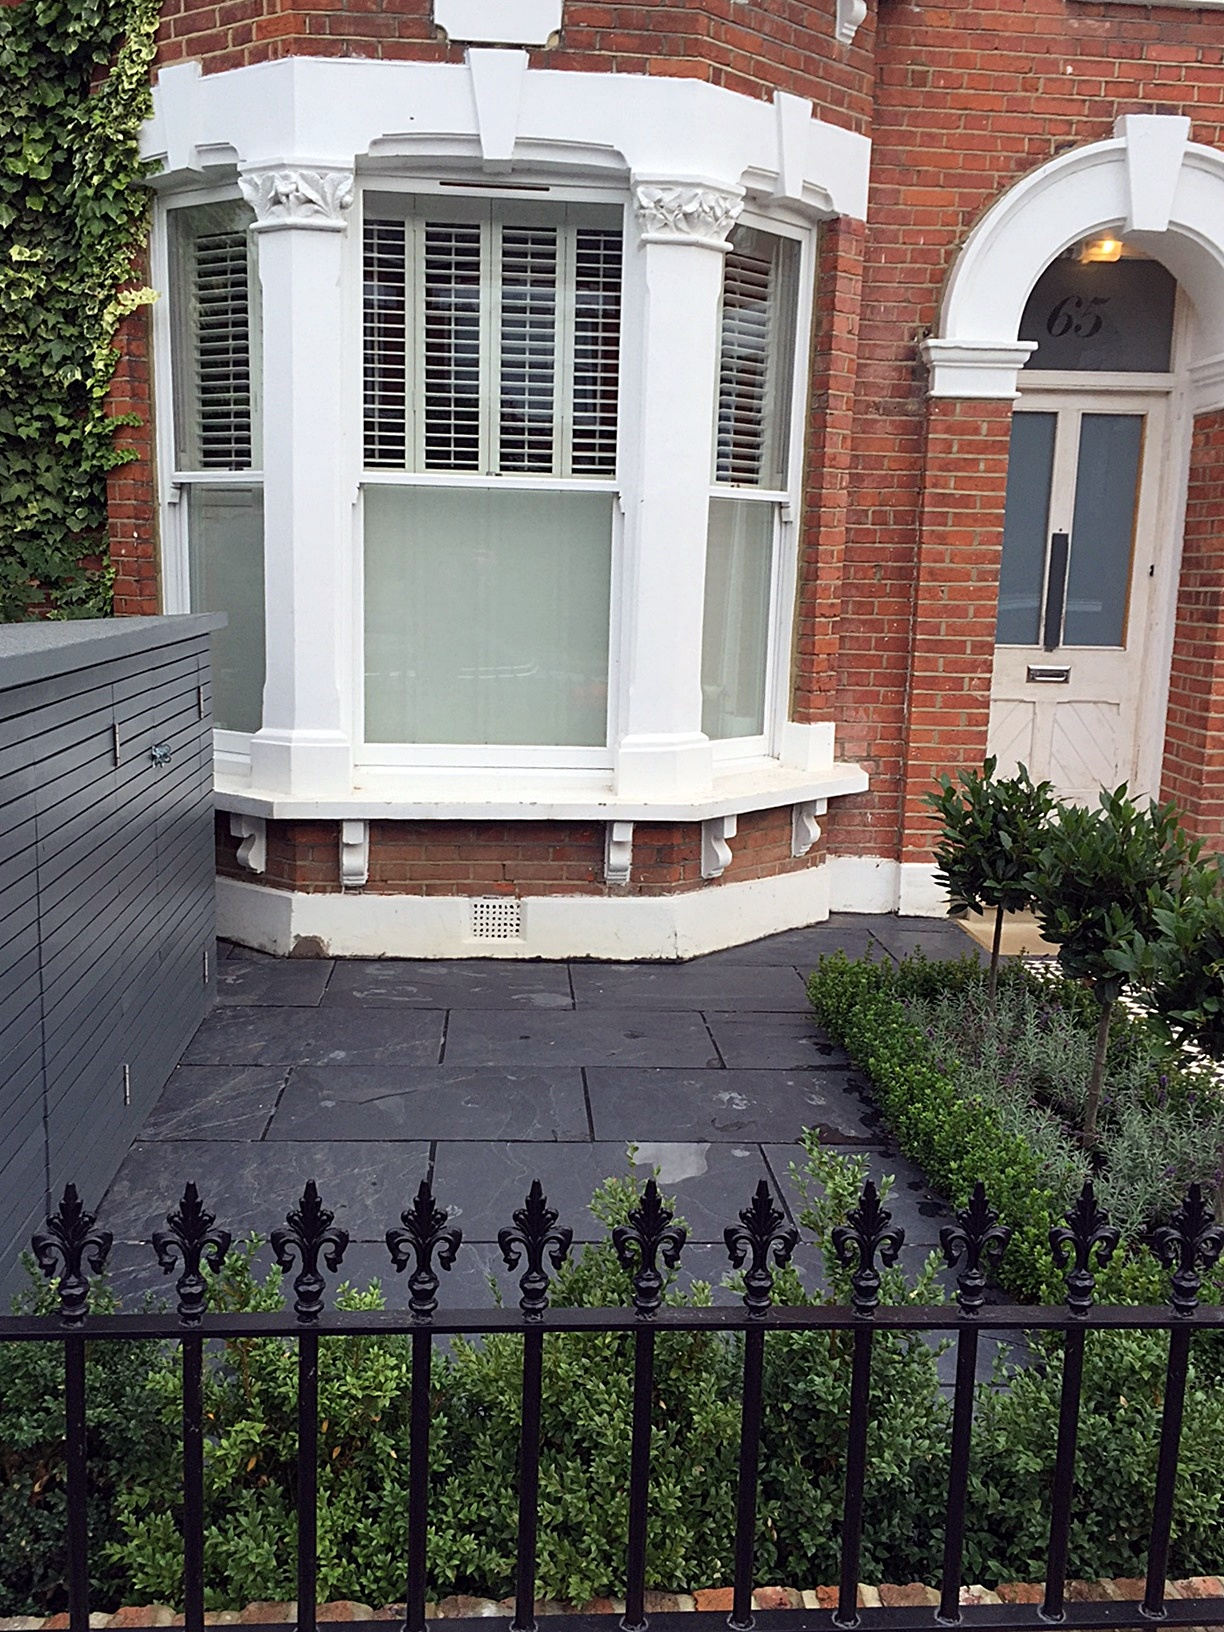 Low maintenance path slate paving metal gate rails planting London Fulham Chelsea Wandsworth